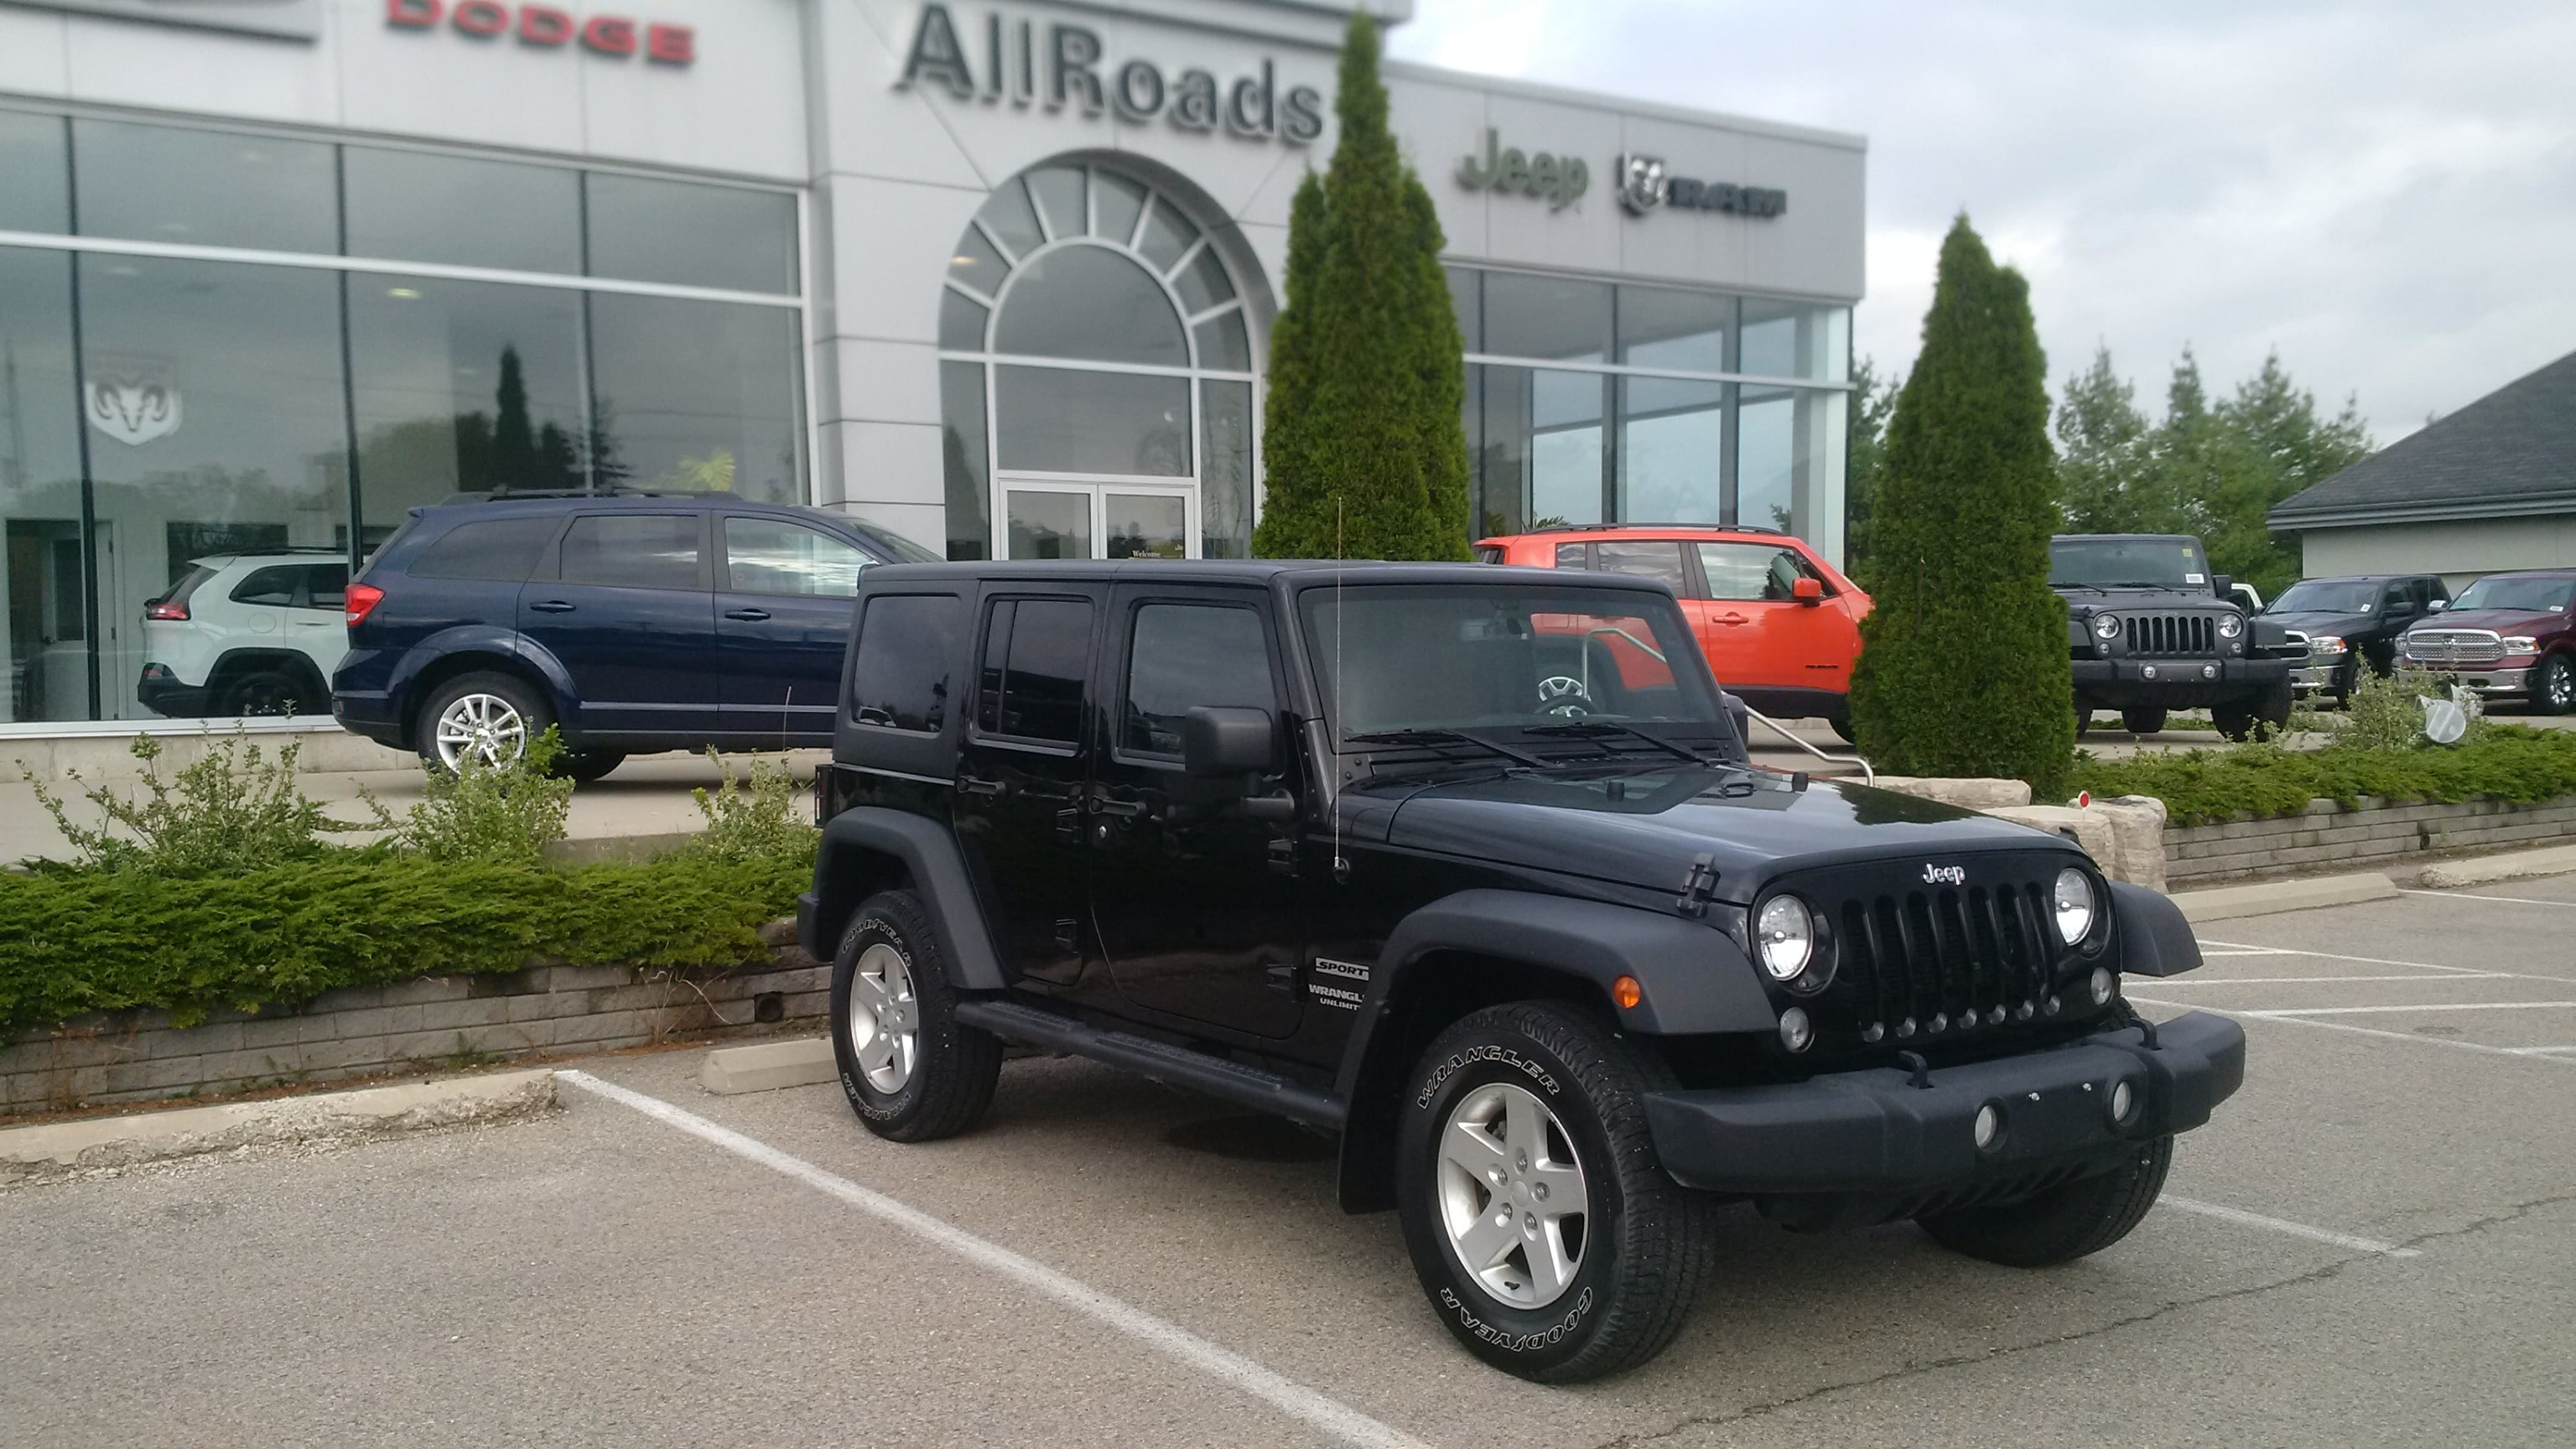 2015 Jeep Wrangler Unlimited Sport Unlimited Loaded 4x4! SUV